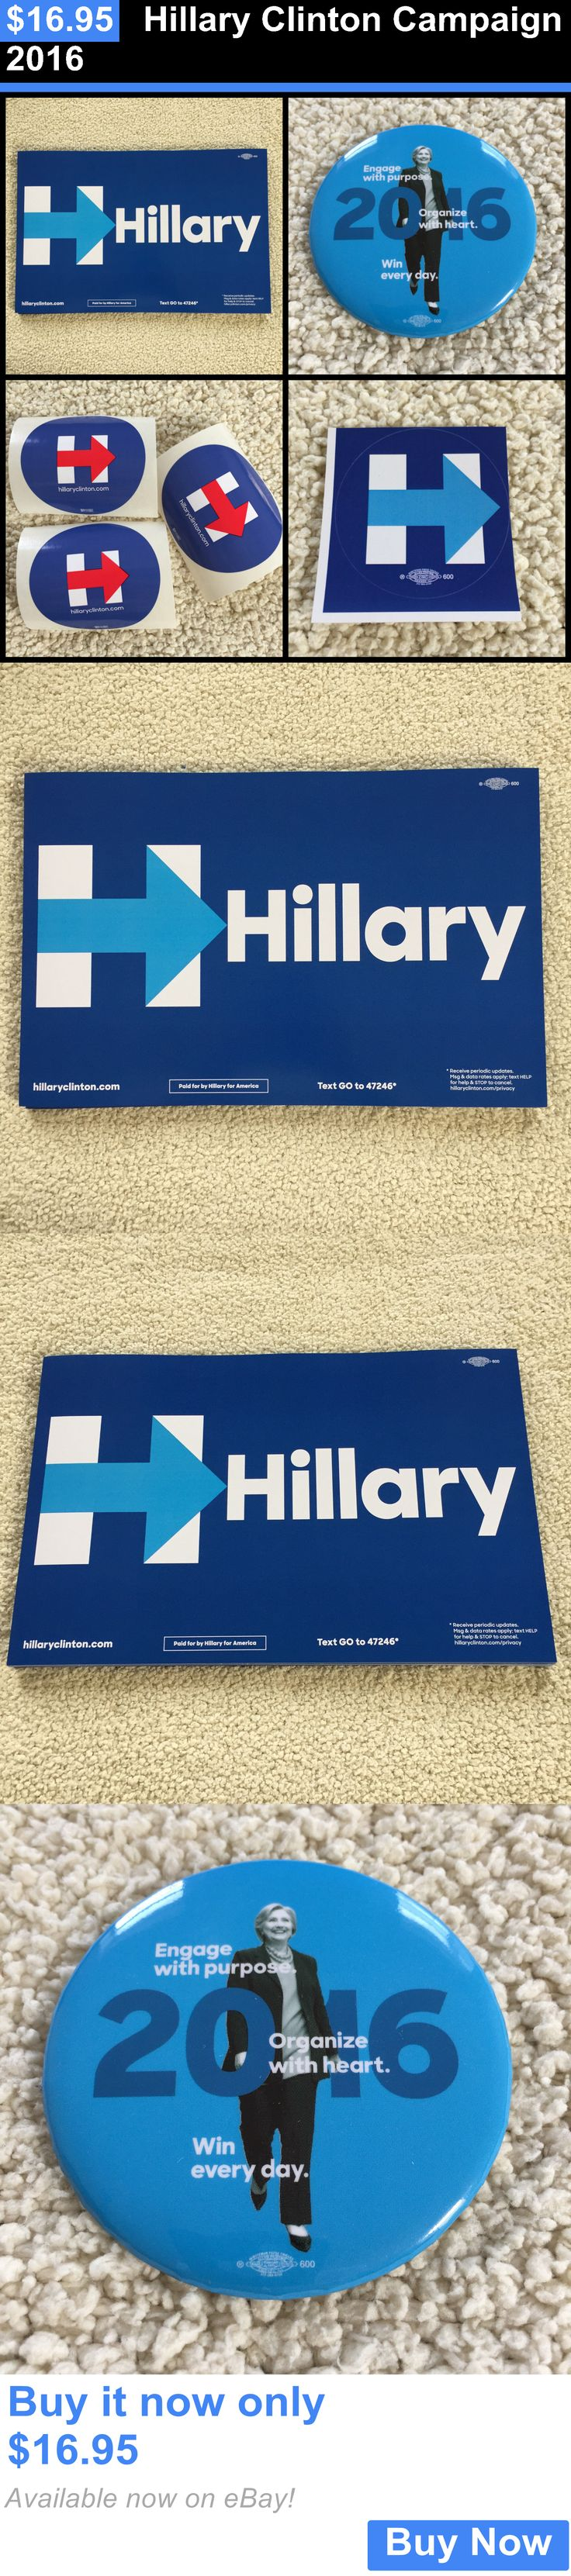 Hillary Clinton: Hillary Clinton Campaign 2016 BUY IT NOW ONLY: $16.95